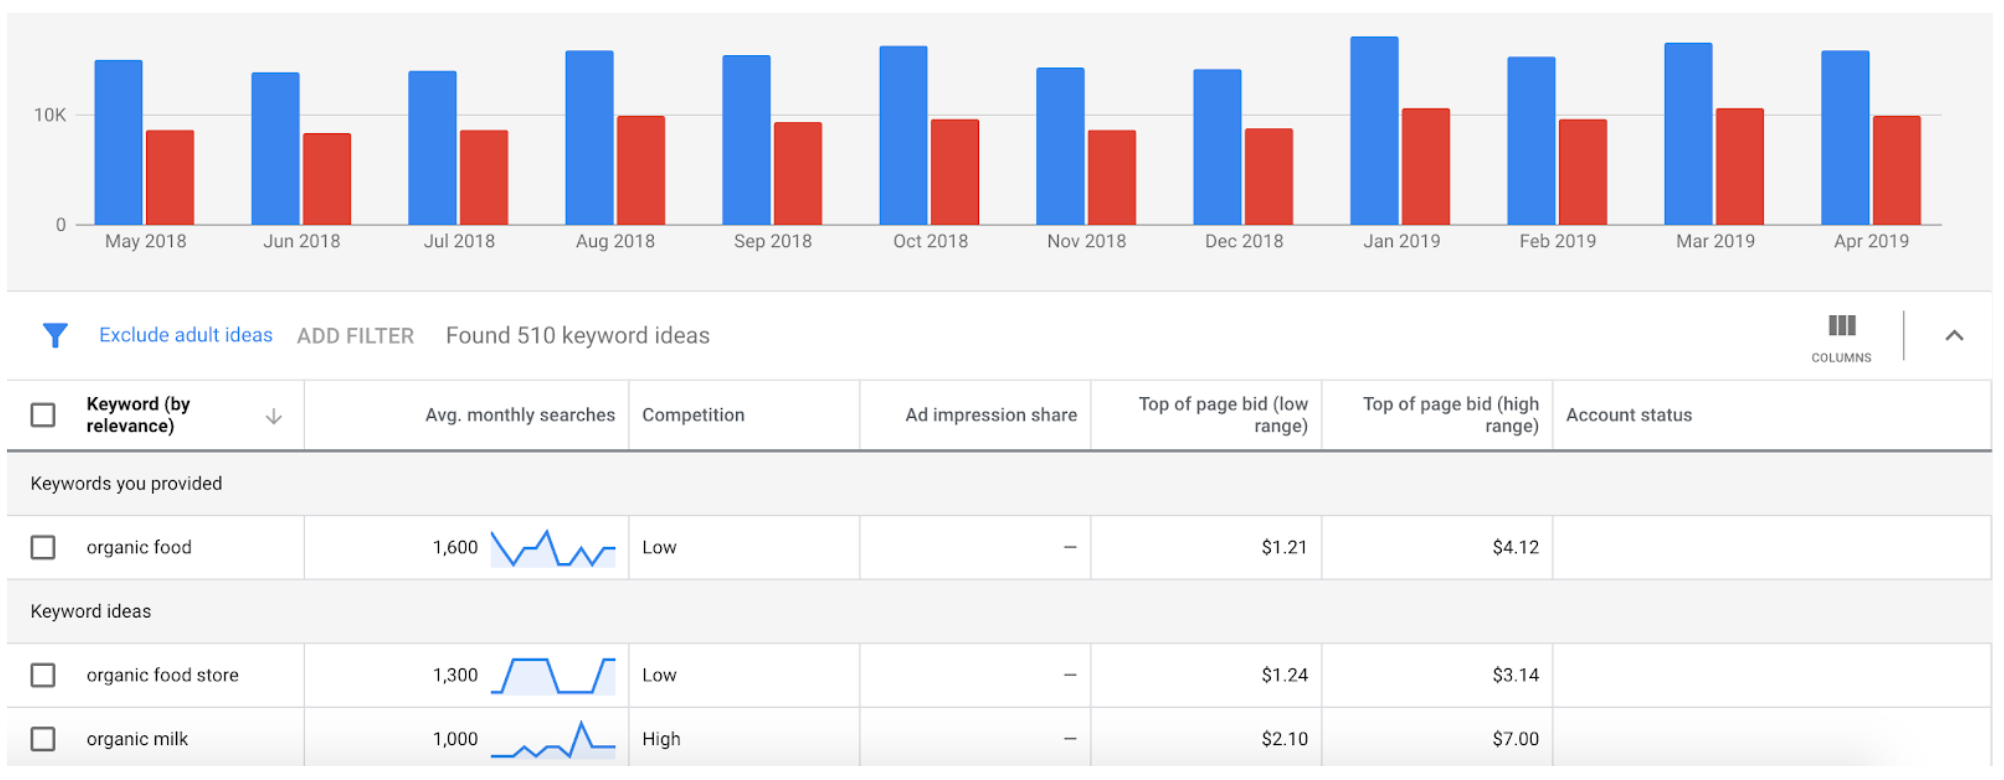 Google Keyword Planner complete data